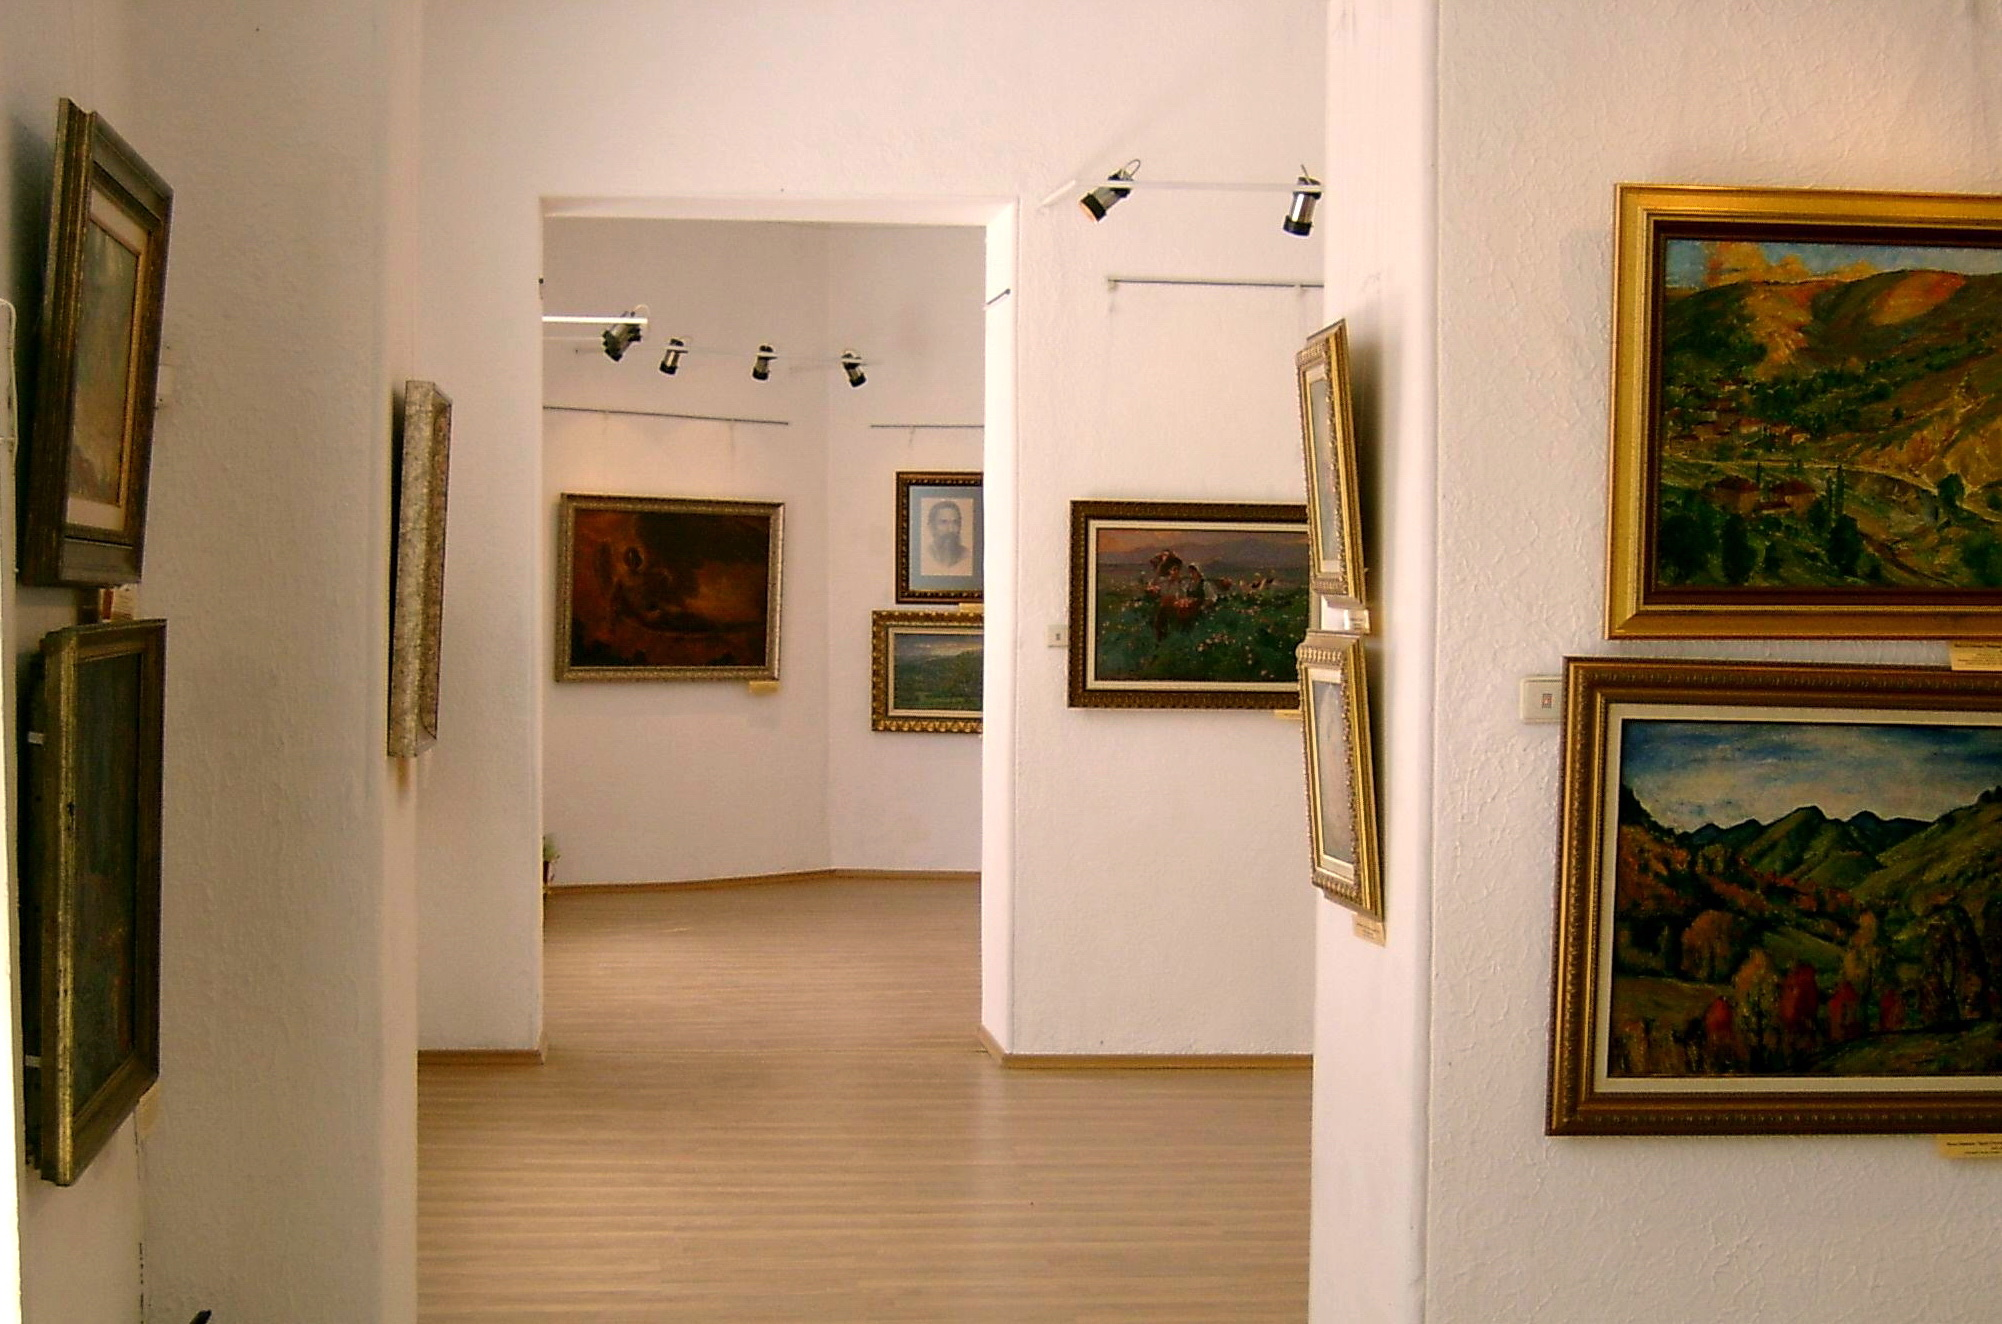 Gallery of Temporary Exhibitions-City Gallery